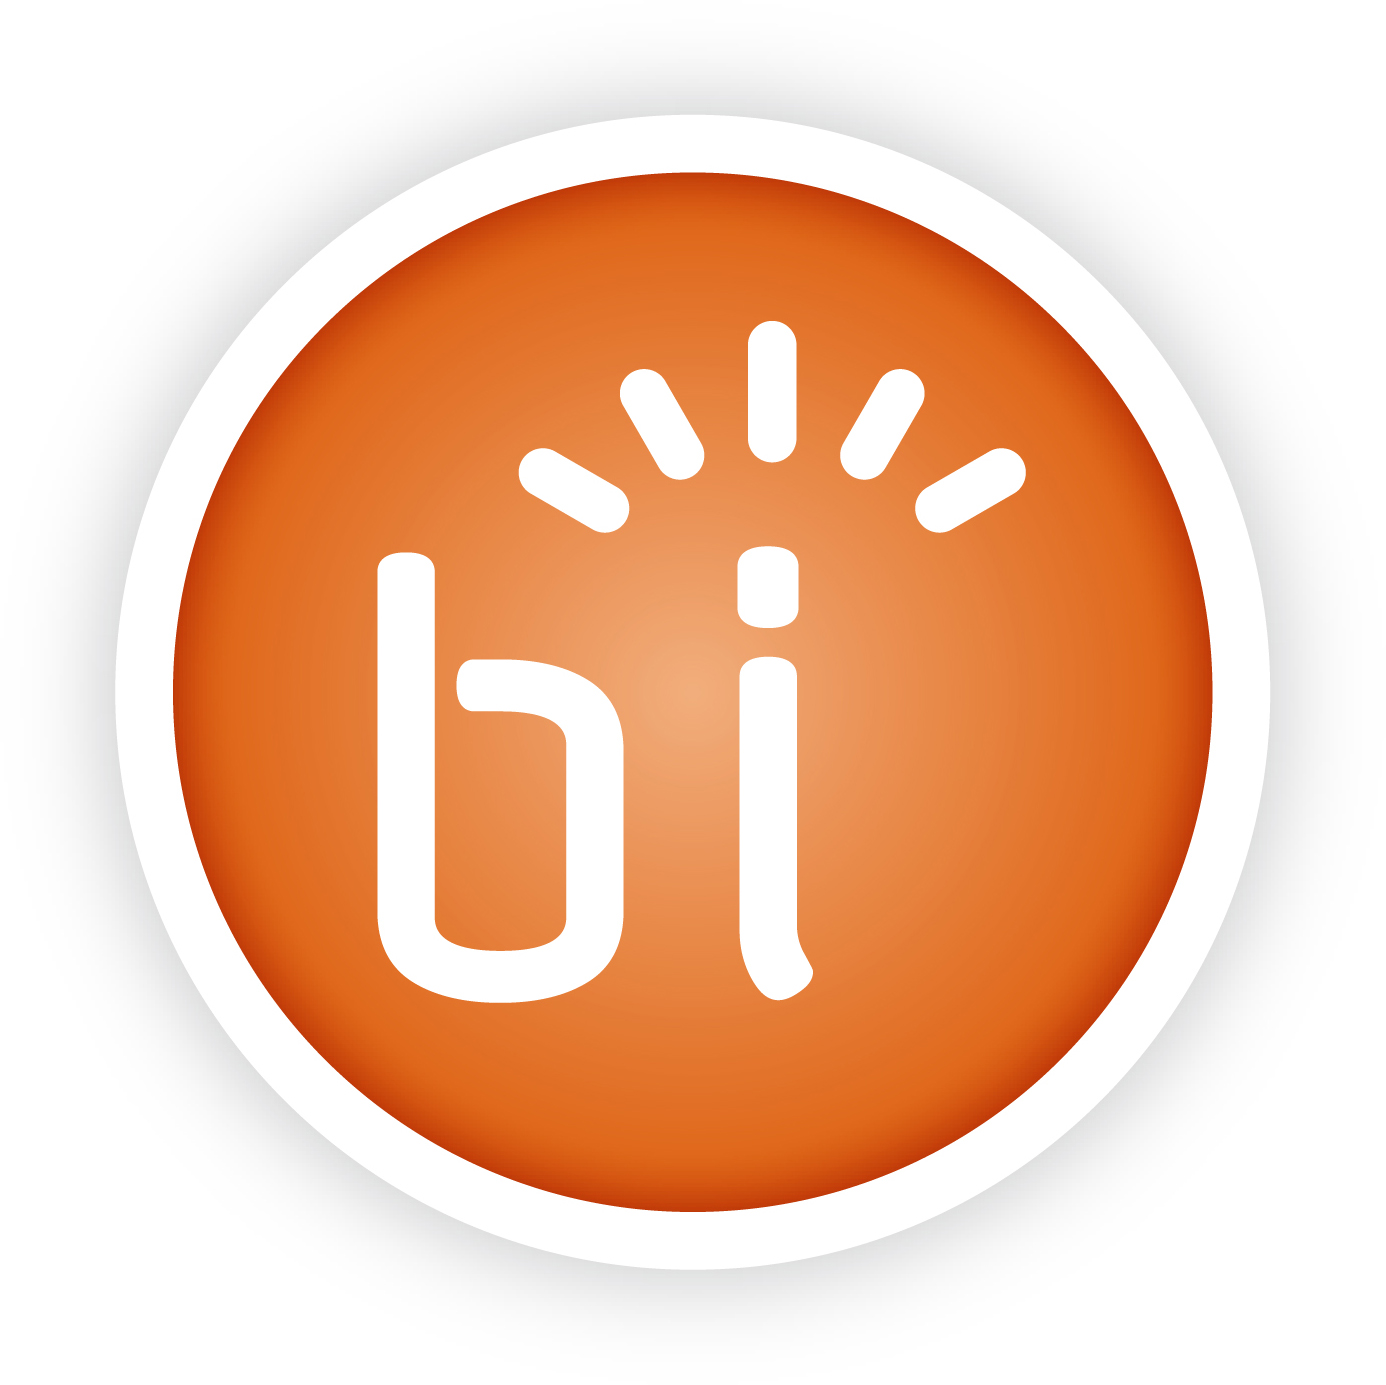 8.0 BI brand insights icon.jpg